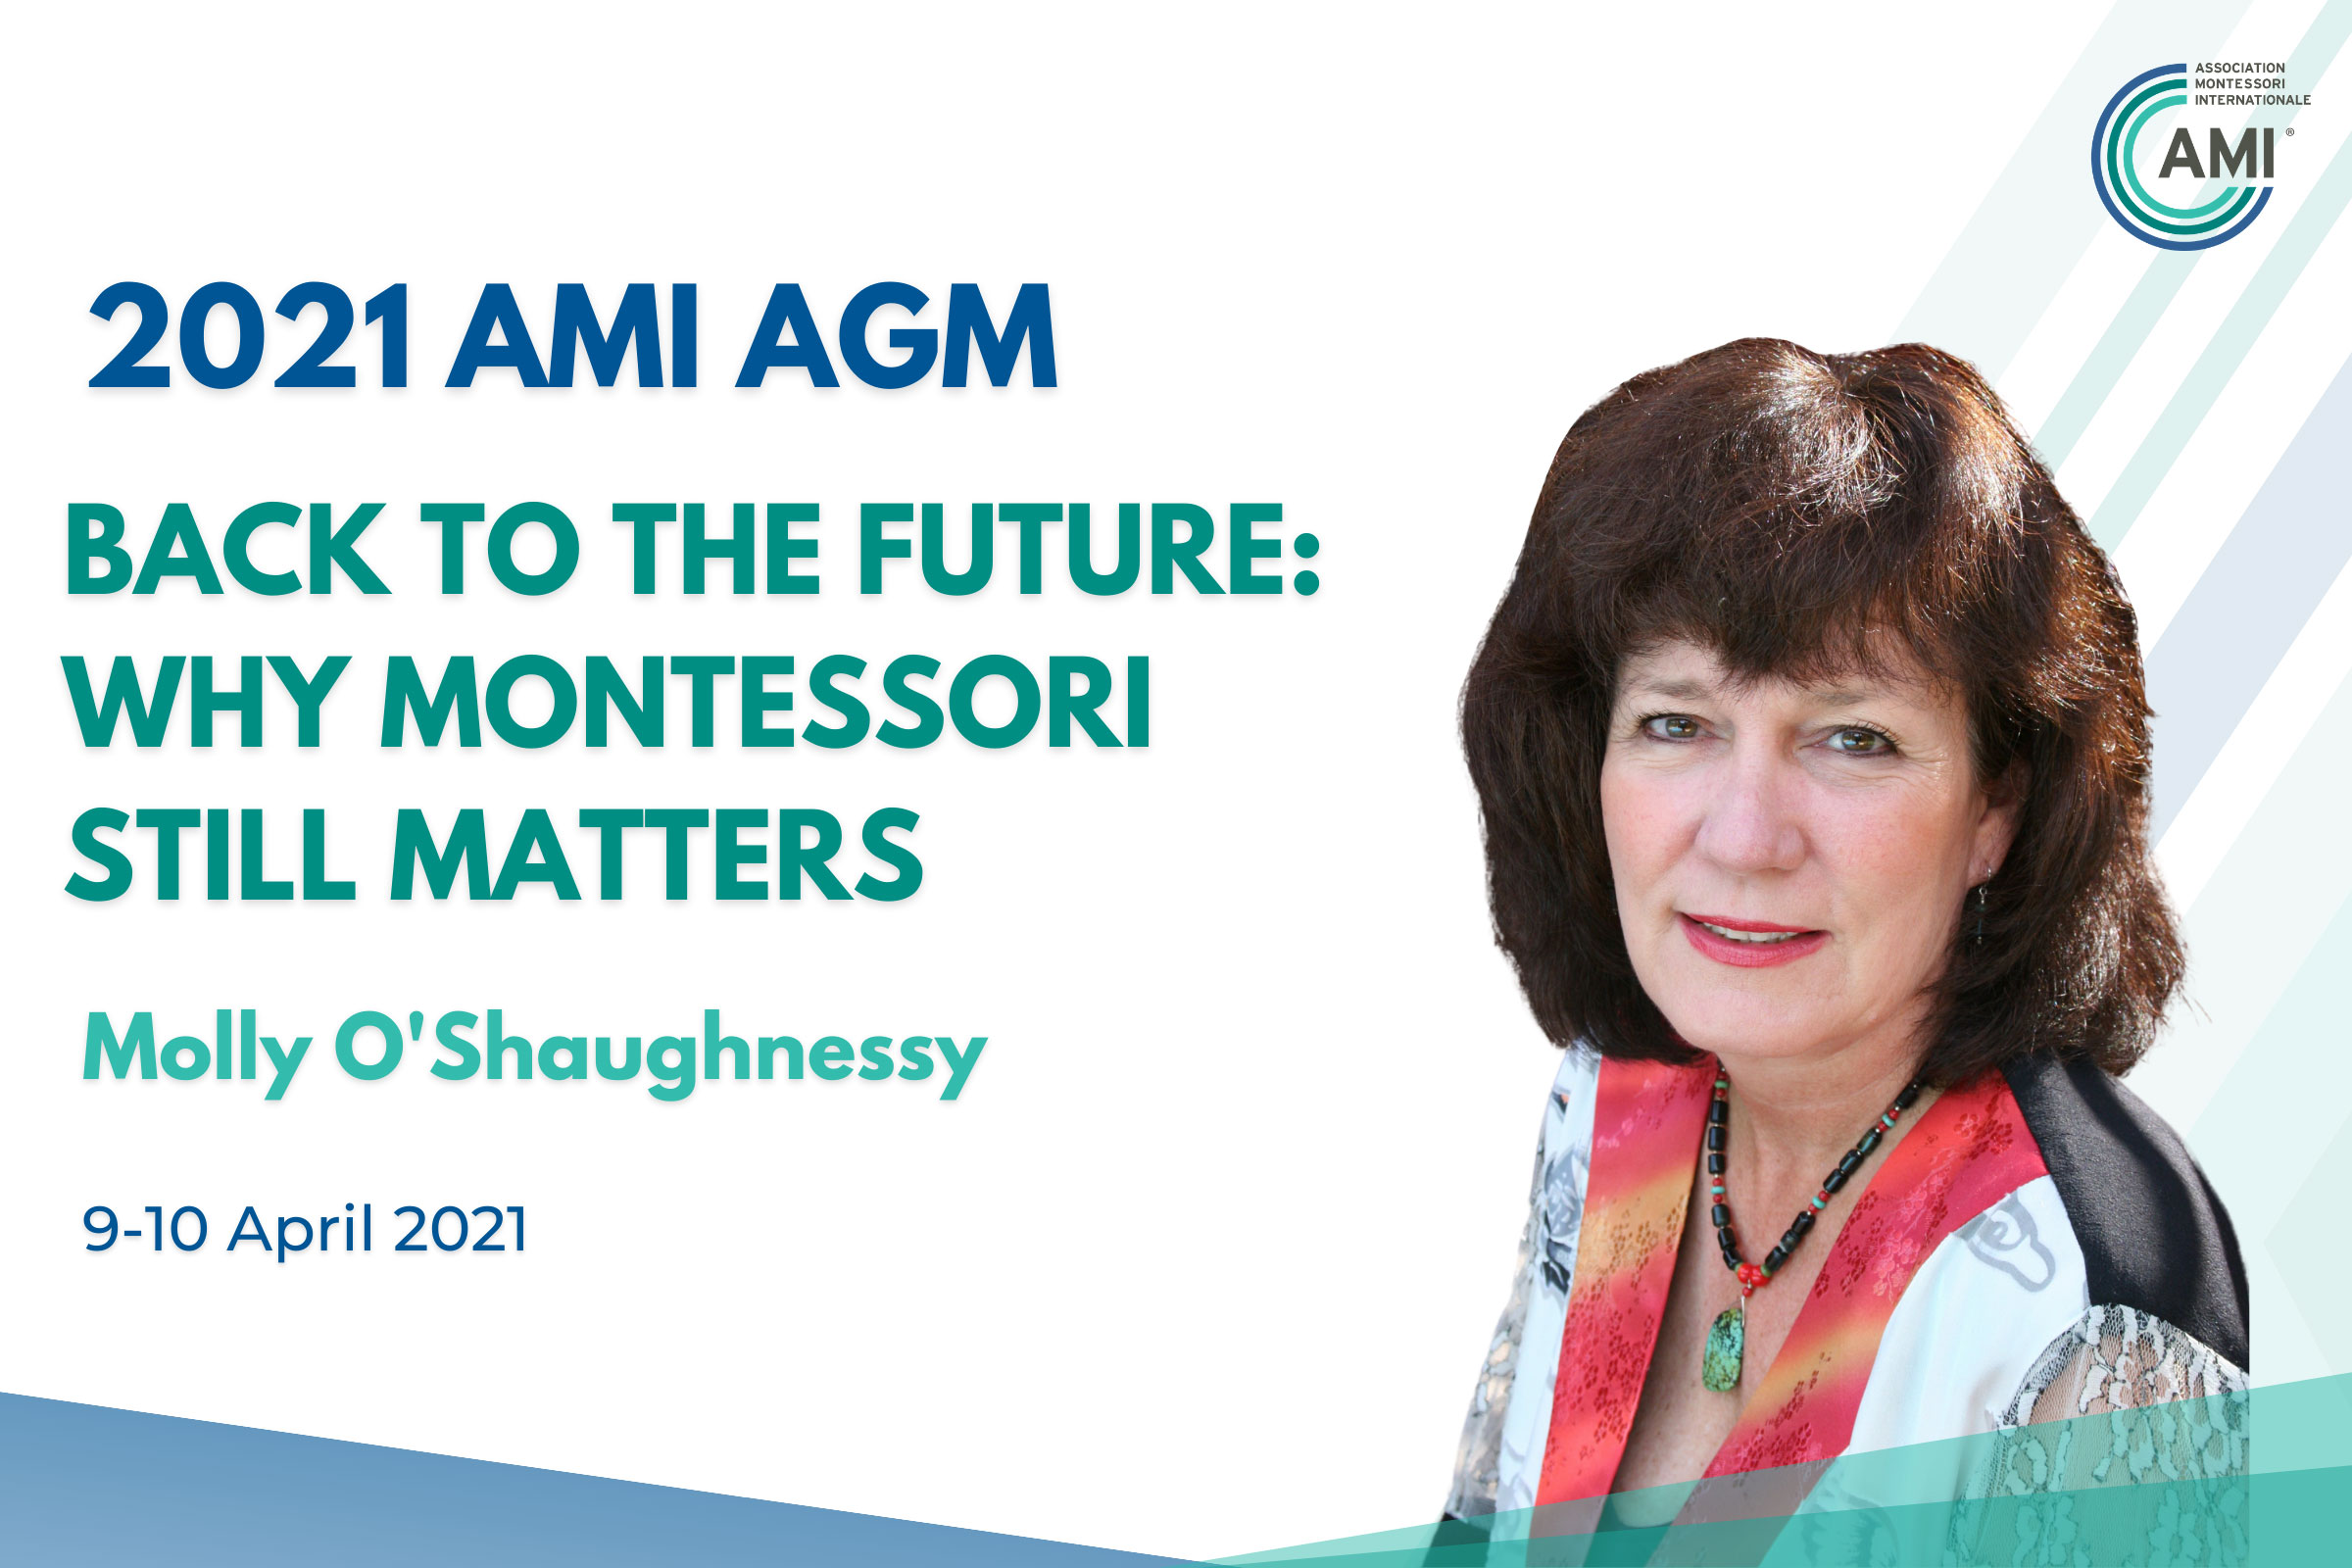 AMI AGM Speakers Molly O'Shaughnessy